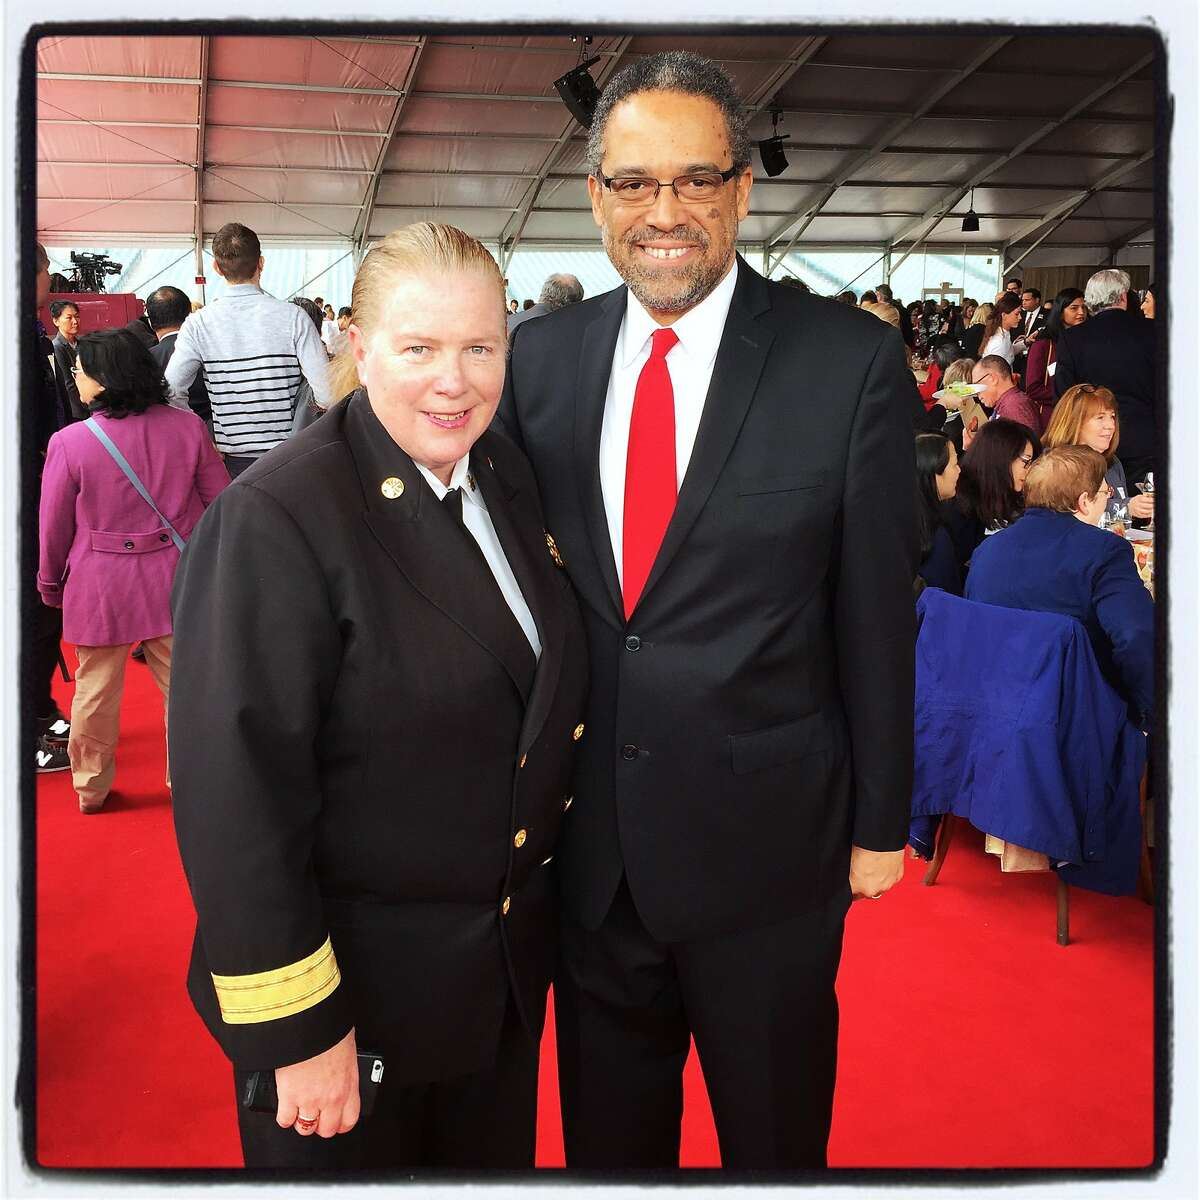 SFFD Chief Joanne Hayes-White and ZSFG Trauma surgeon Dr. Andre Campbell. Feb 16, 2017.